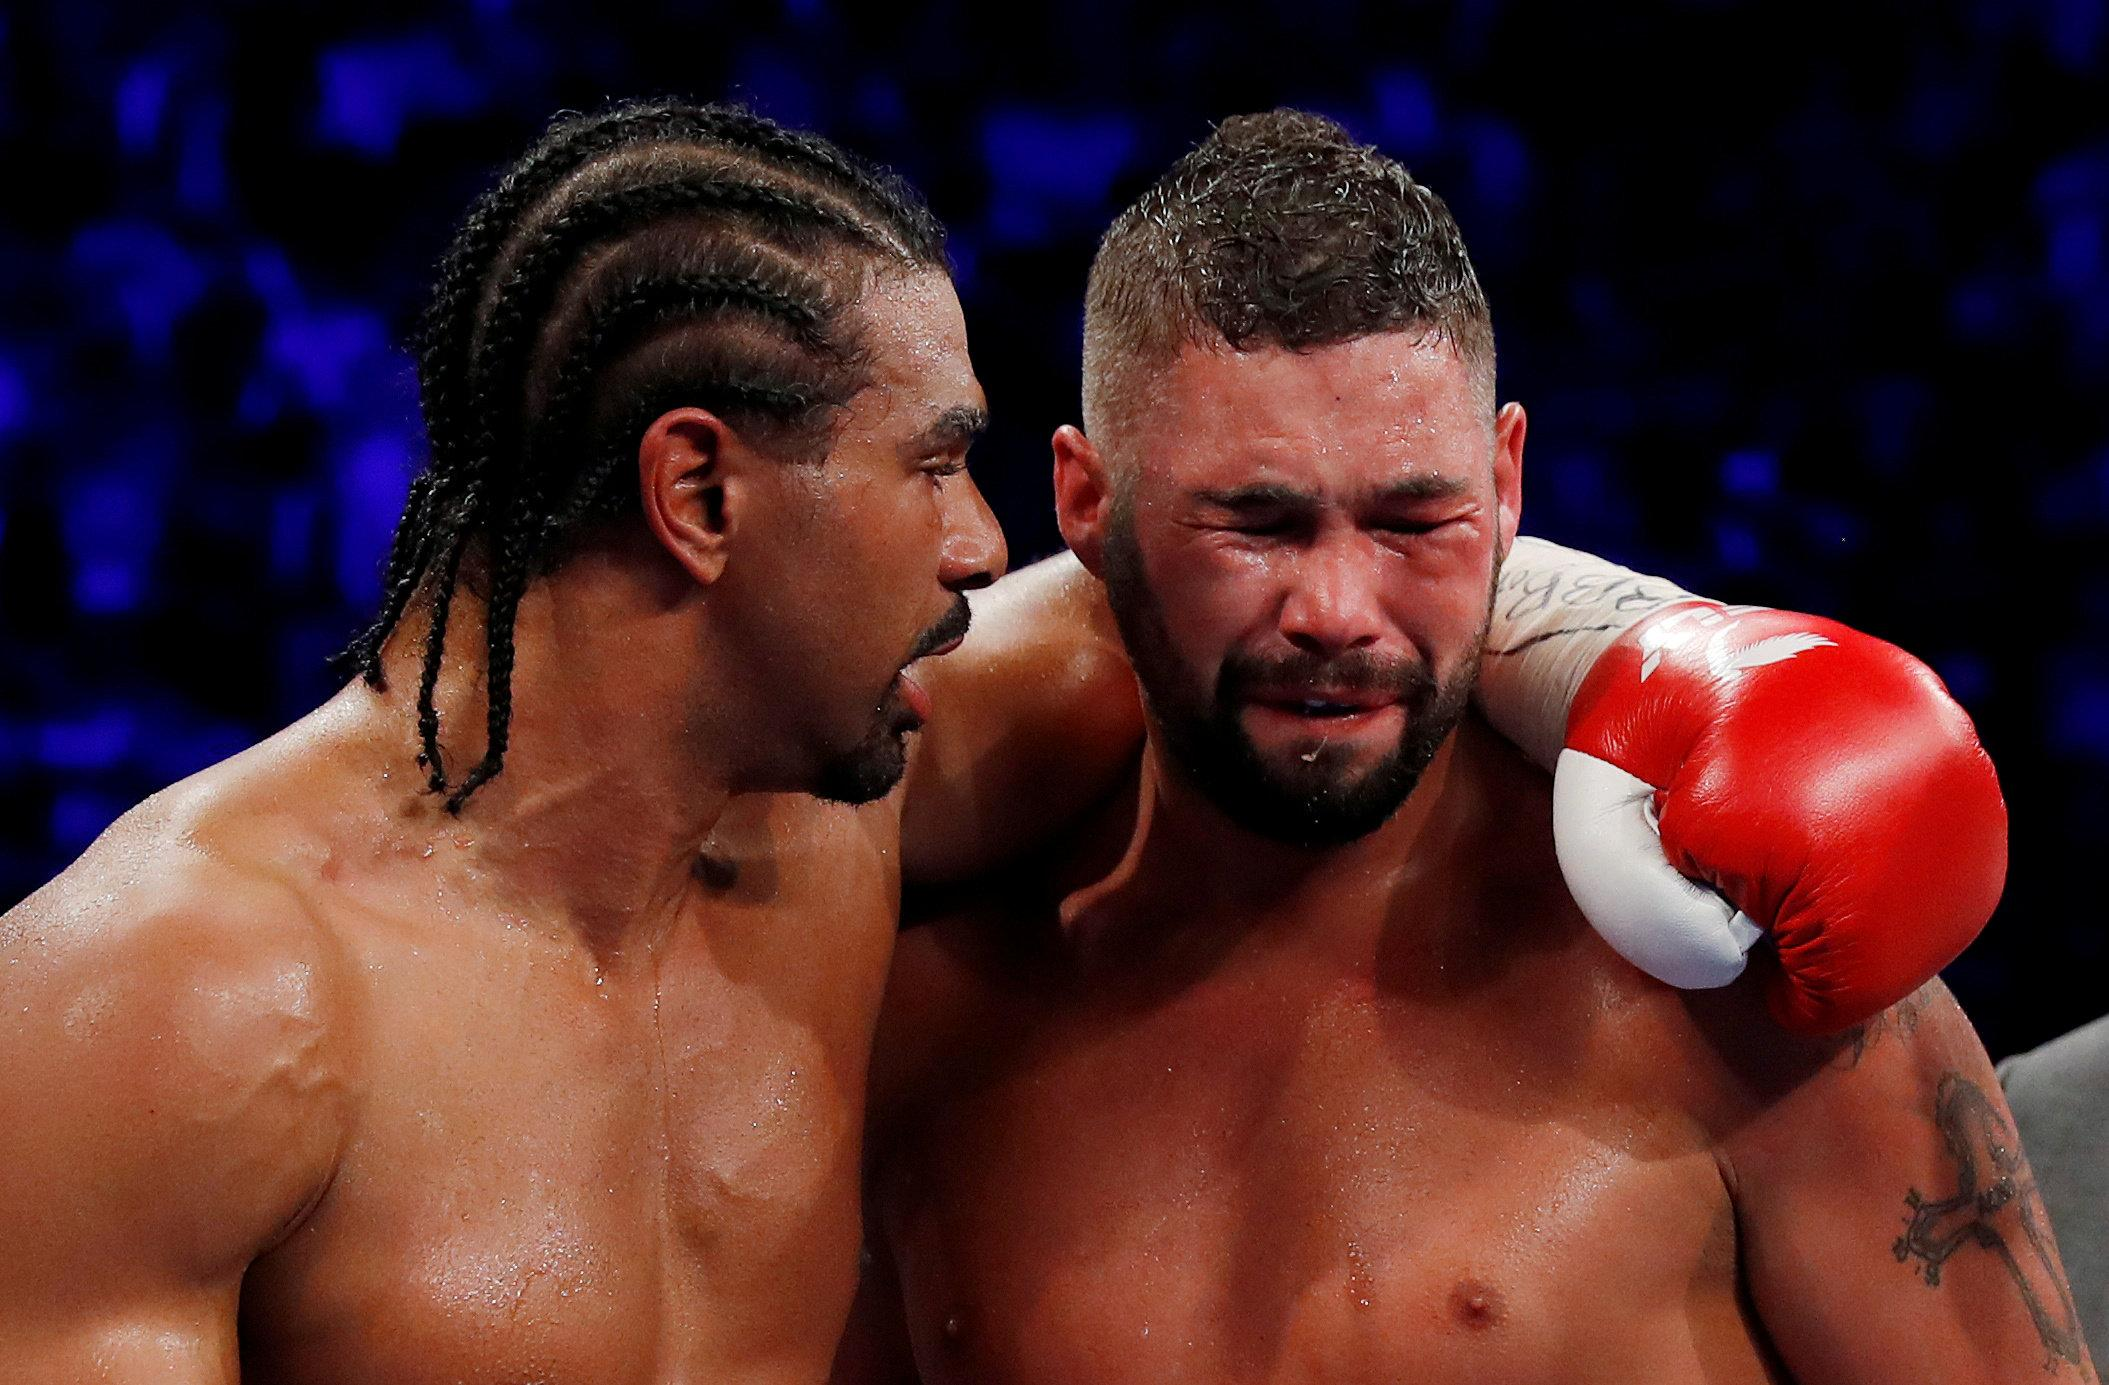 Tony Bellew fought David Haye twice at heavyweight and won both contests